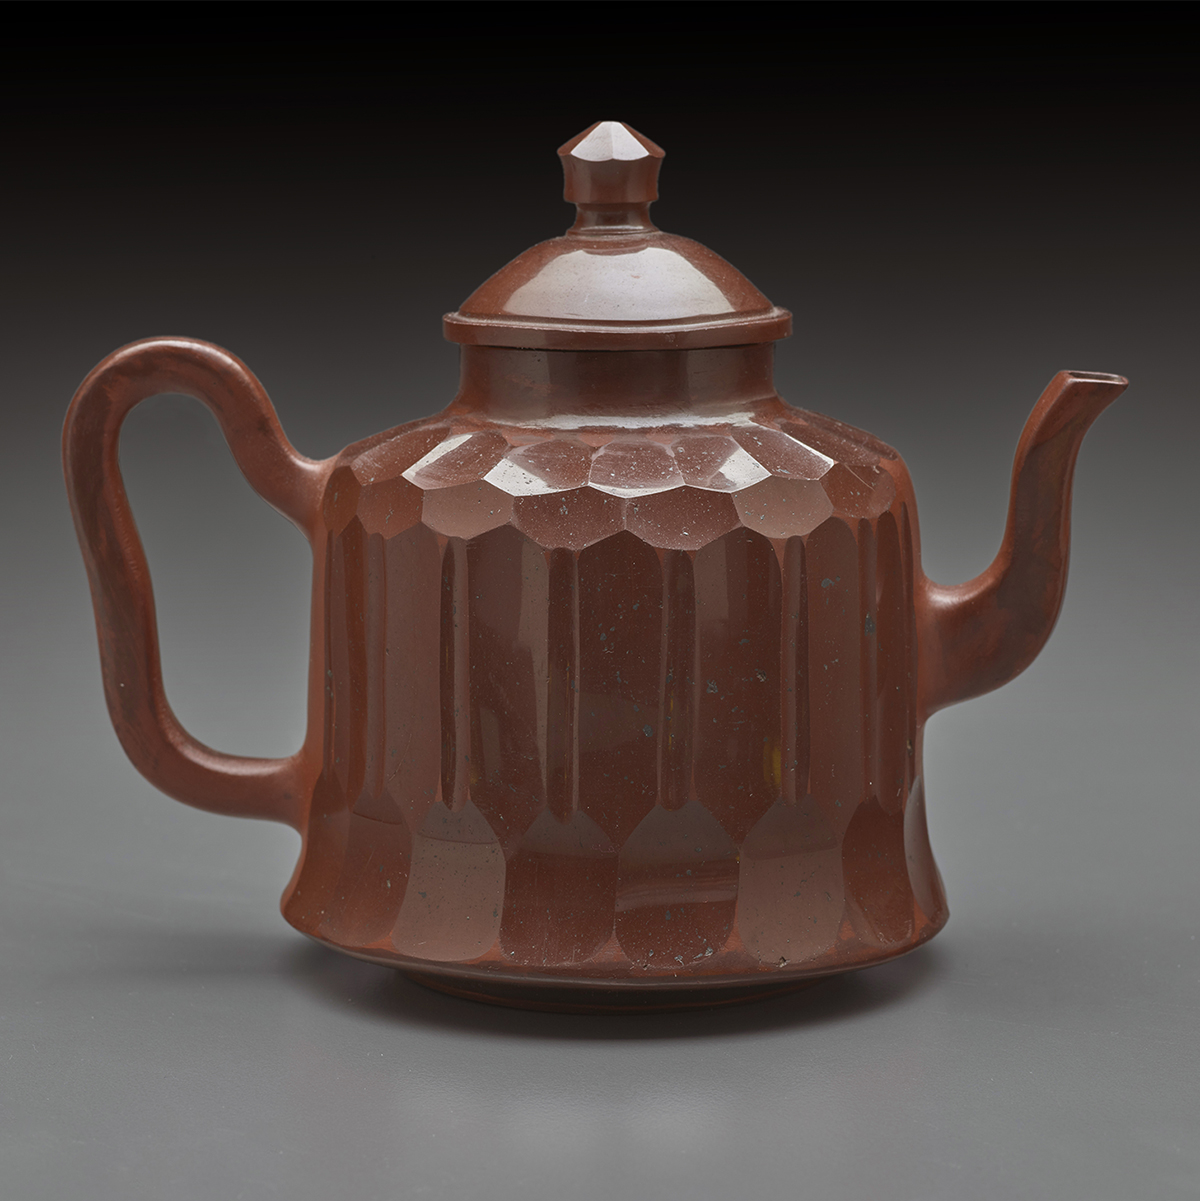 Red stoneware teapot with cover